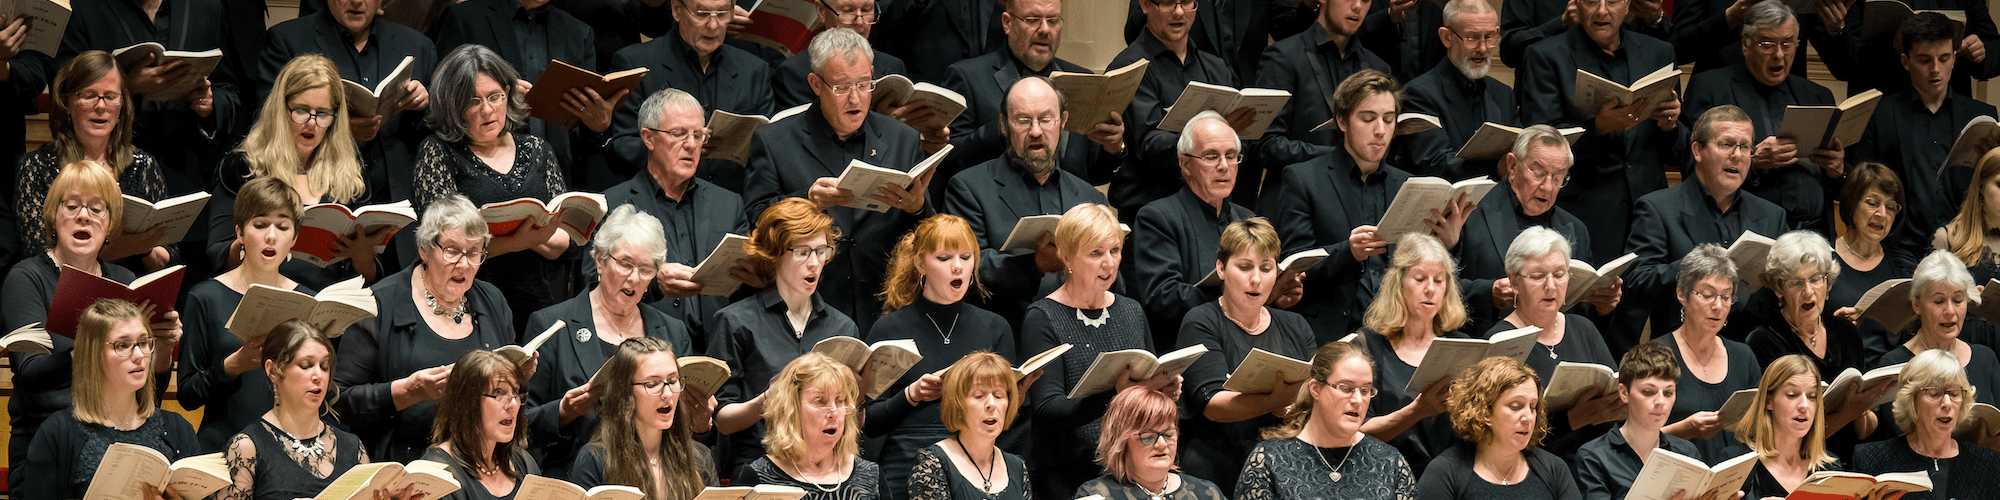 Leicestershire Chorale People